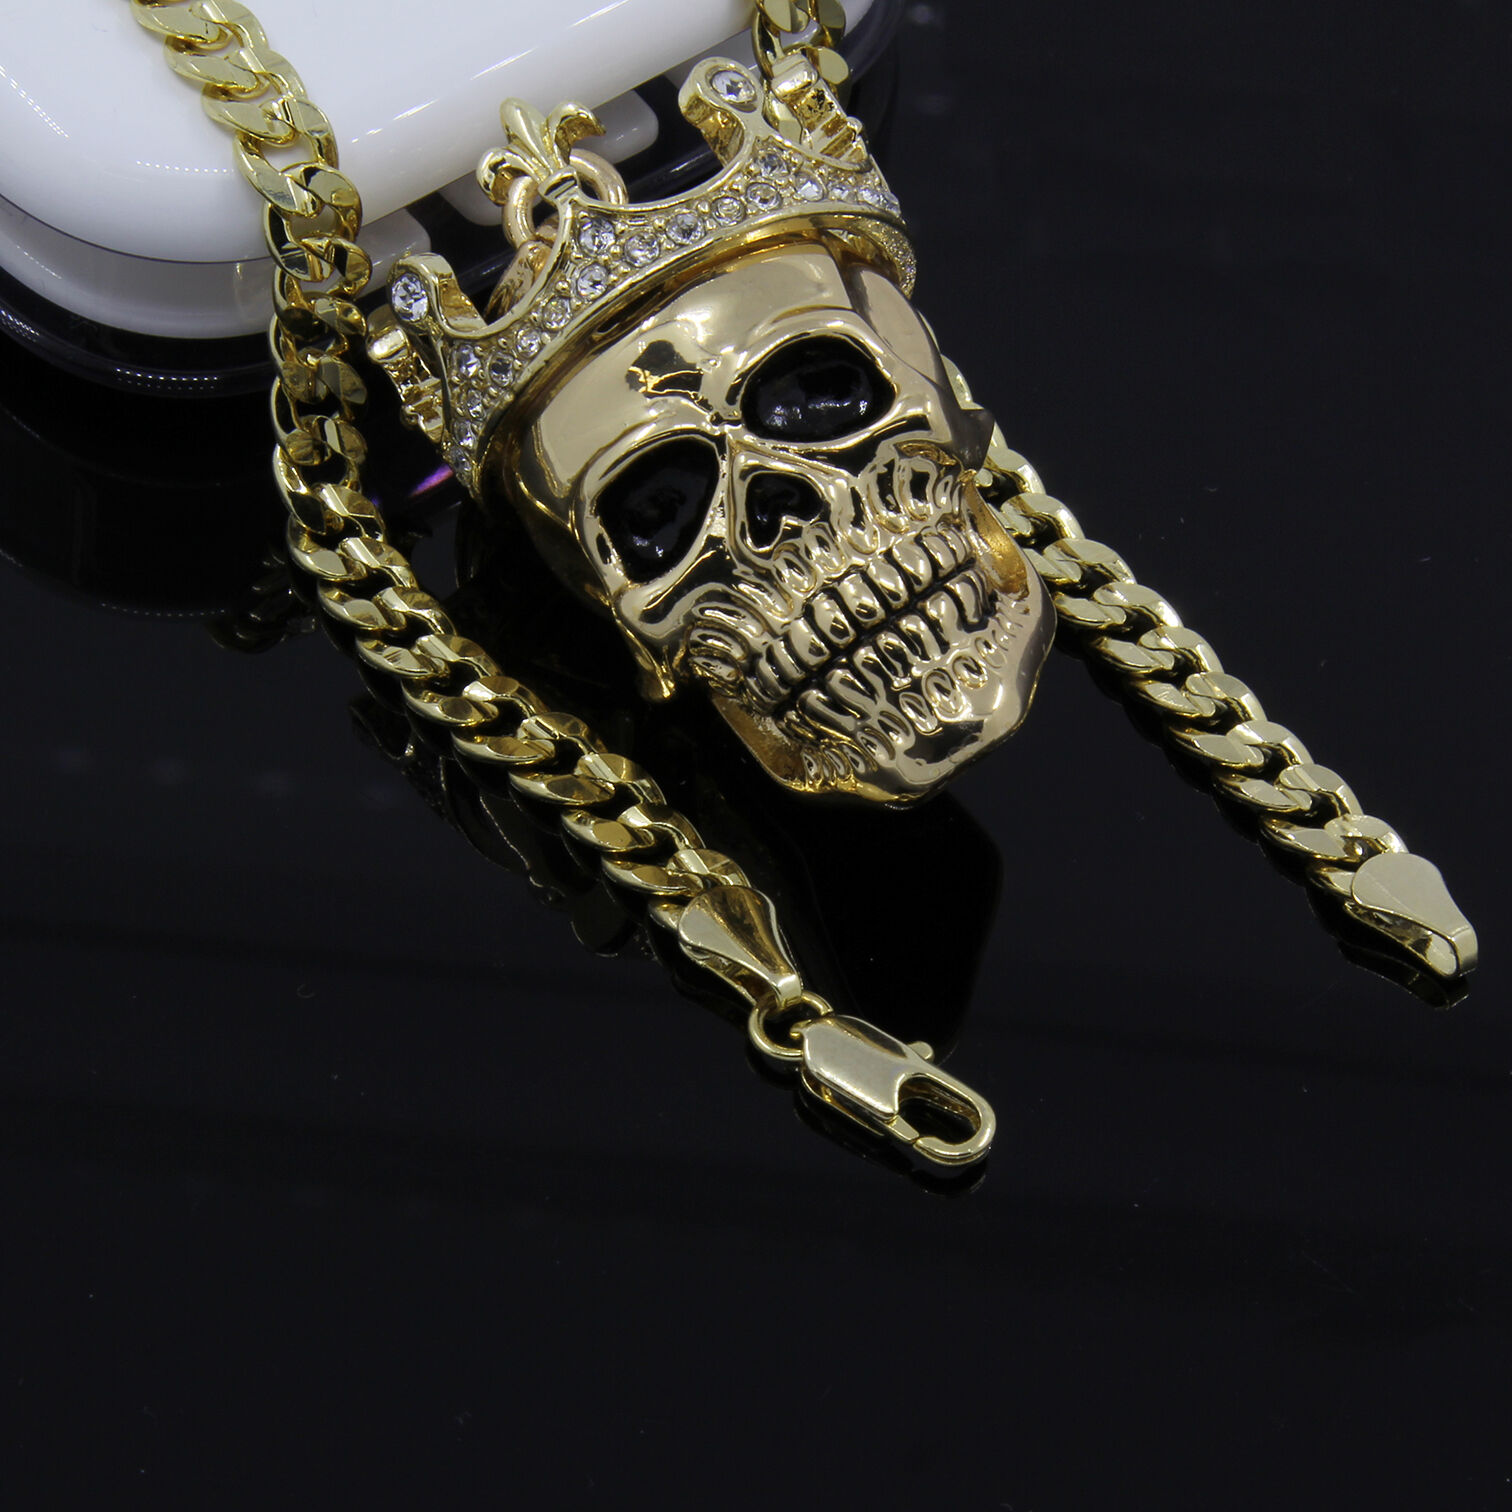 biker silver rings necklaces jewelry handmade pendant skull masonic freemason pendants immortal gold and